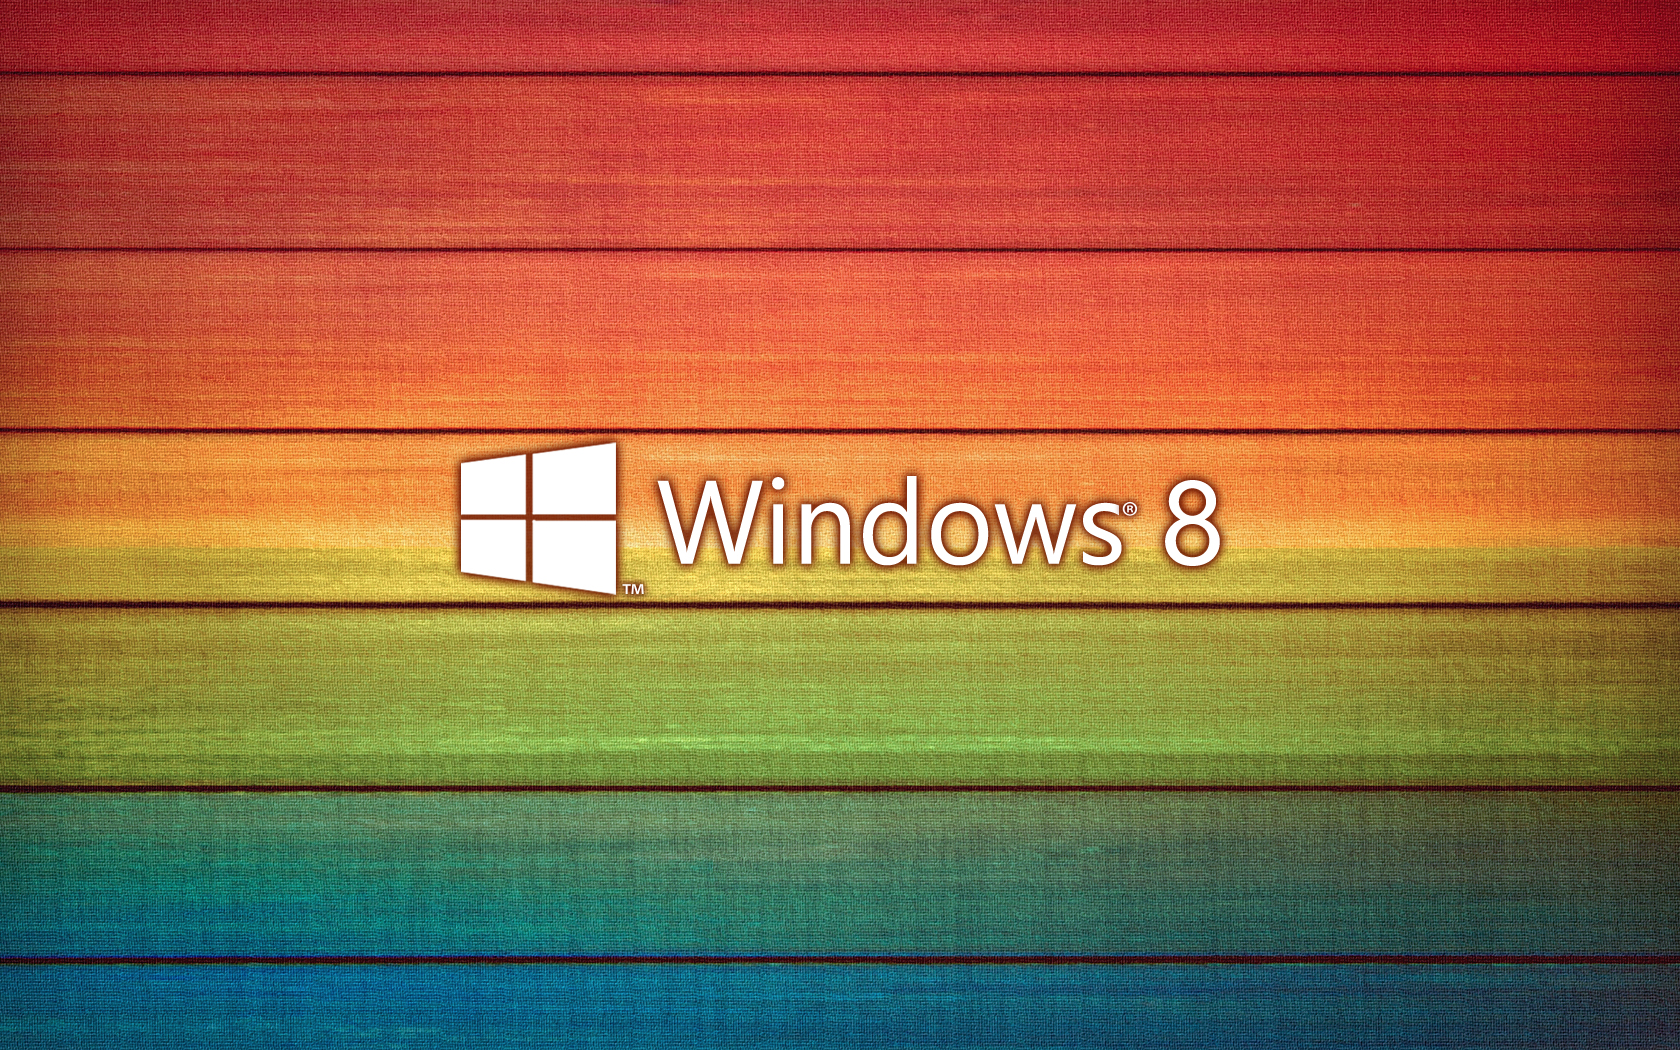 Windows 8 38831023 Wallpaper for Free | Best High Quality Pictures